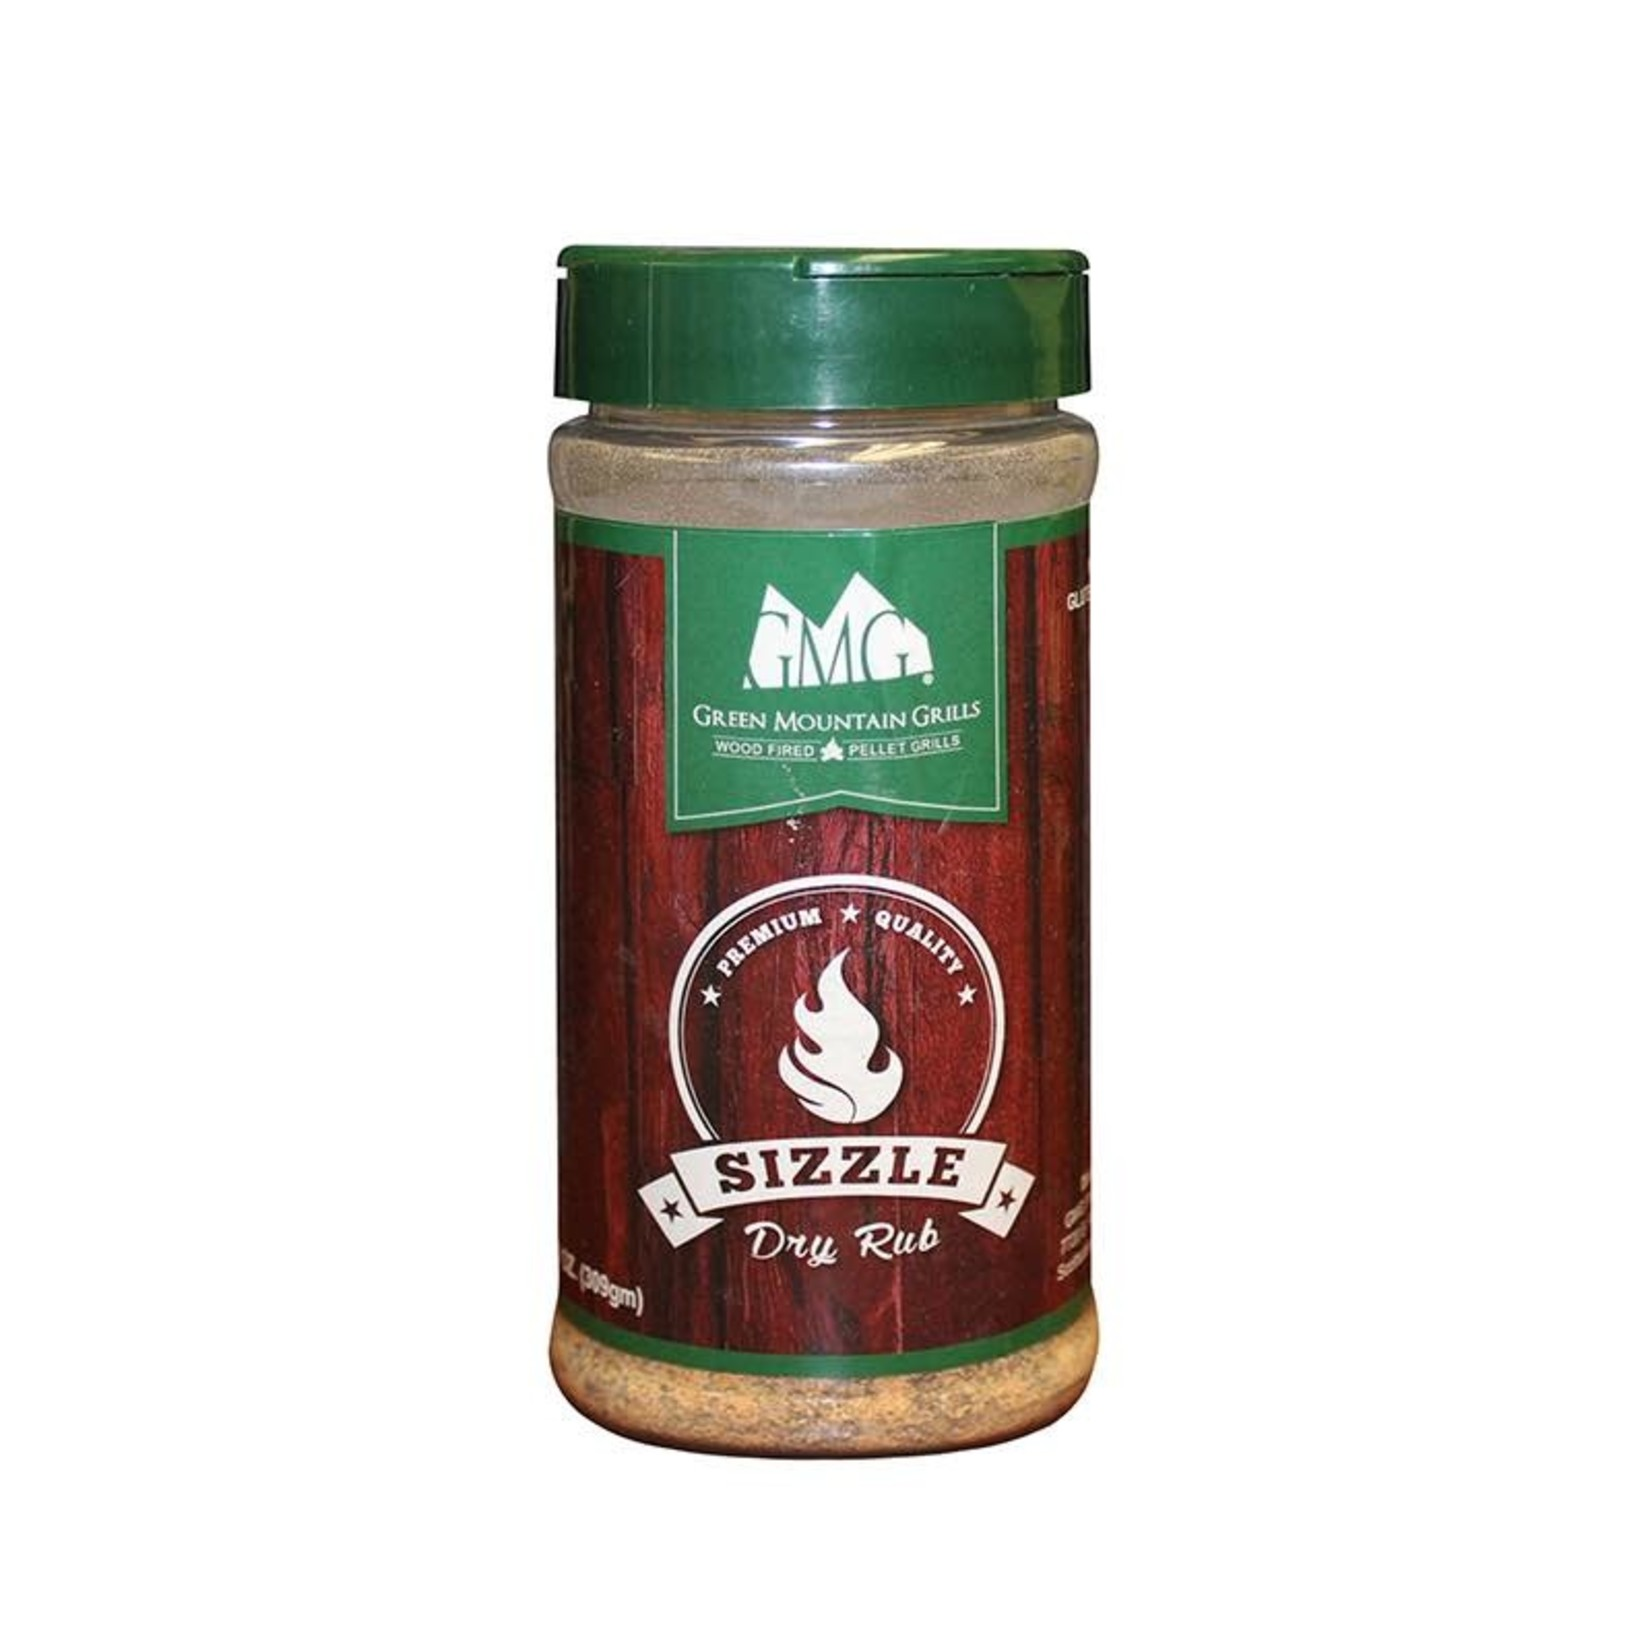 Green Mountain Grill GMG Sizzle Rub